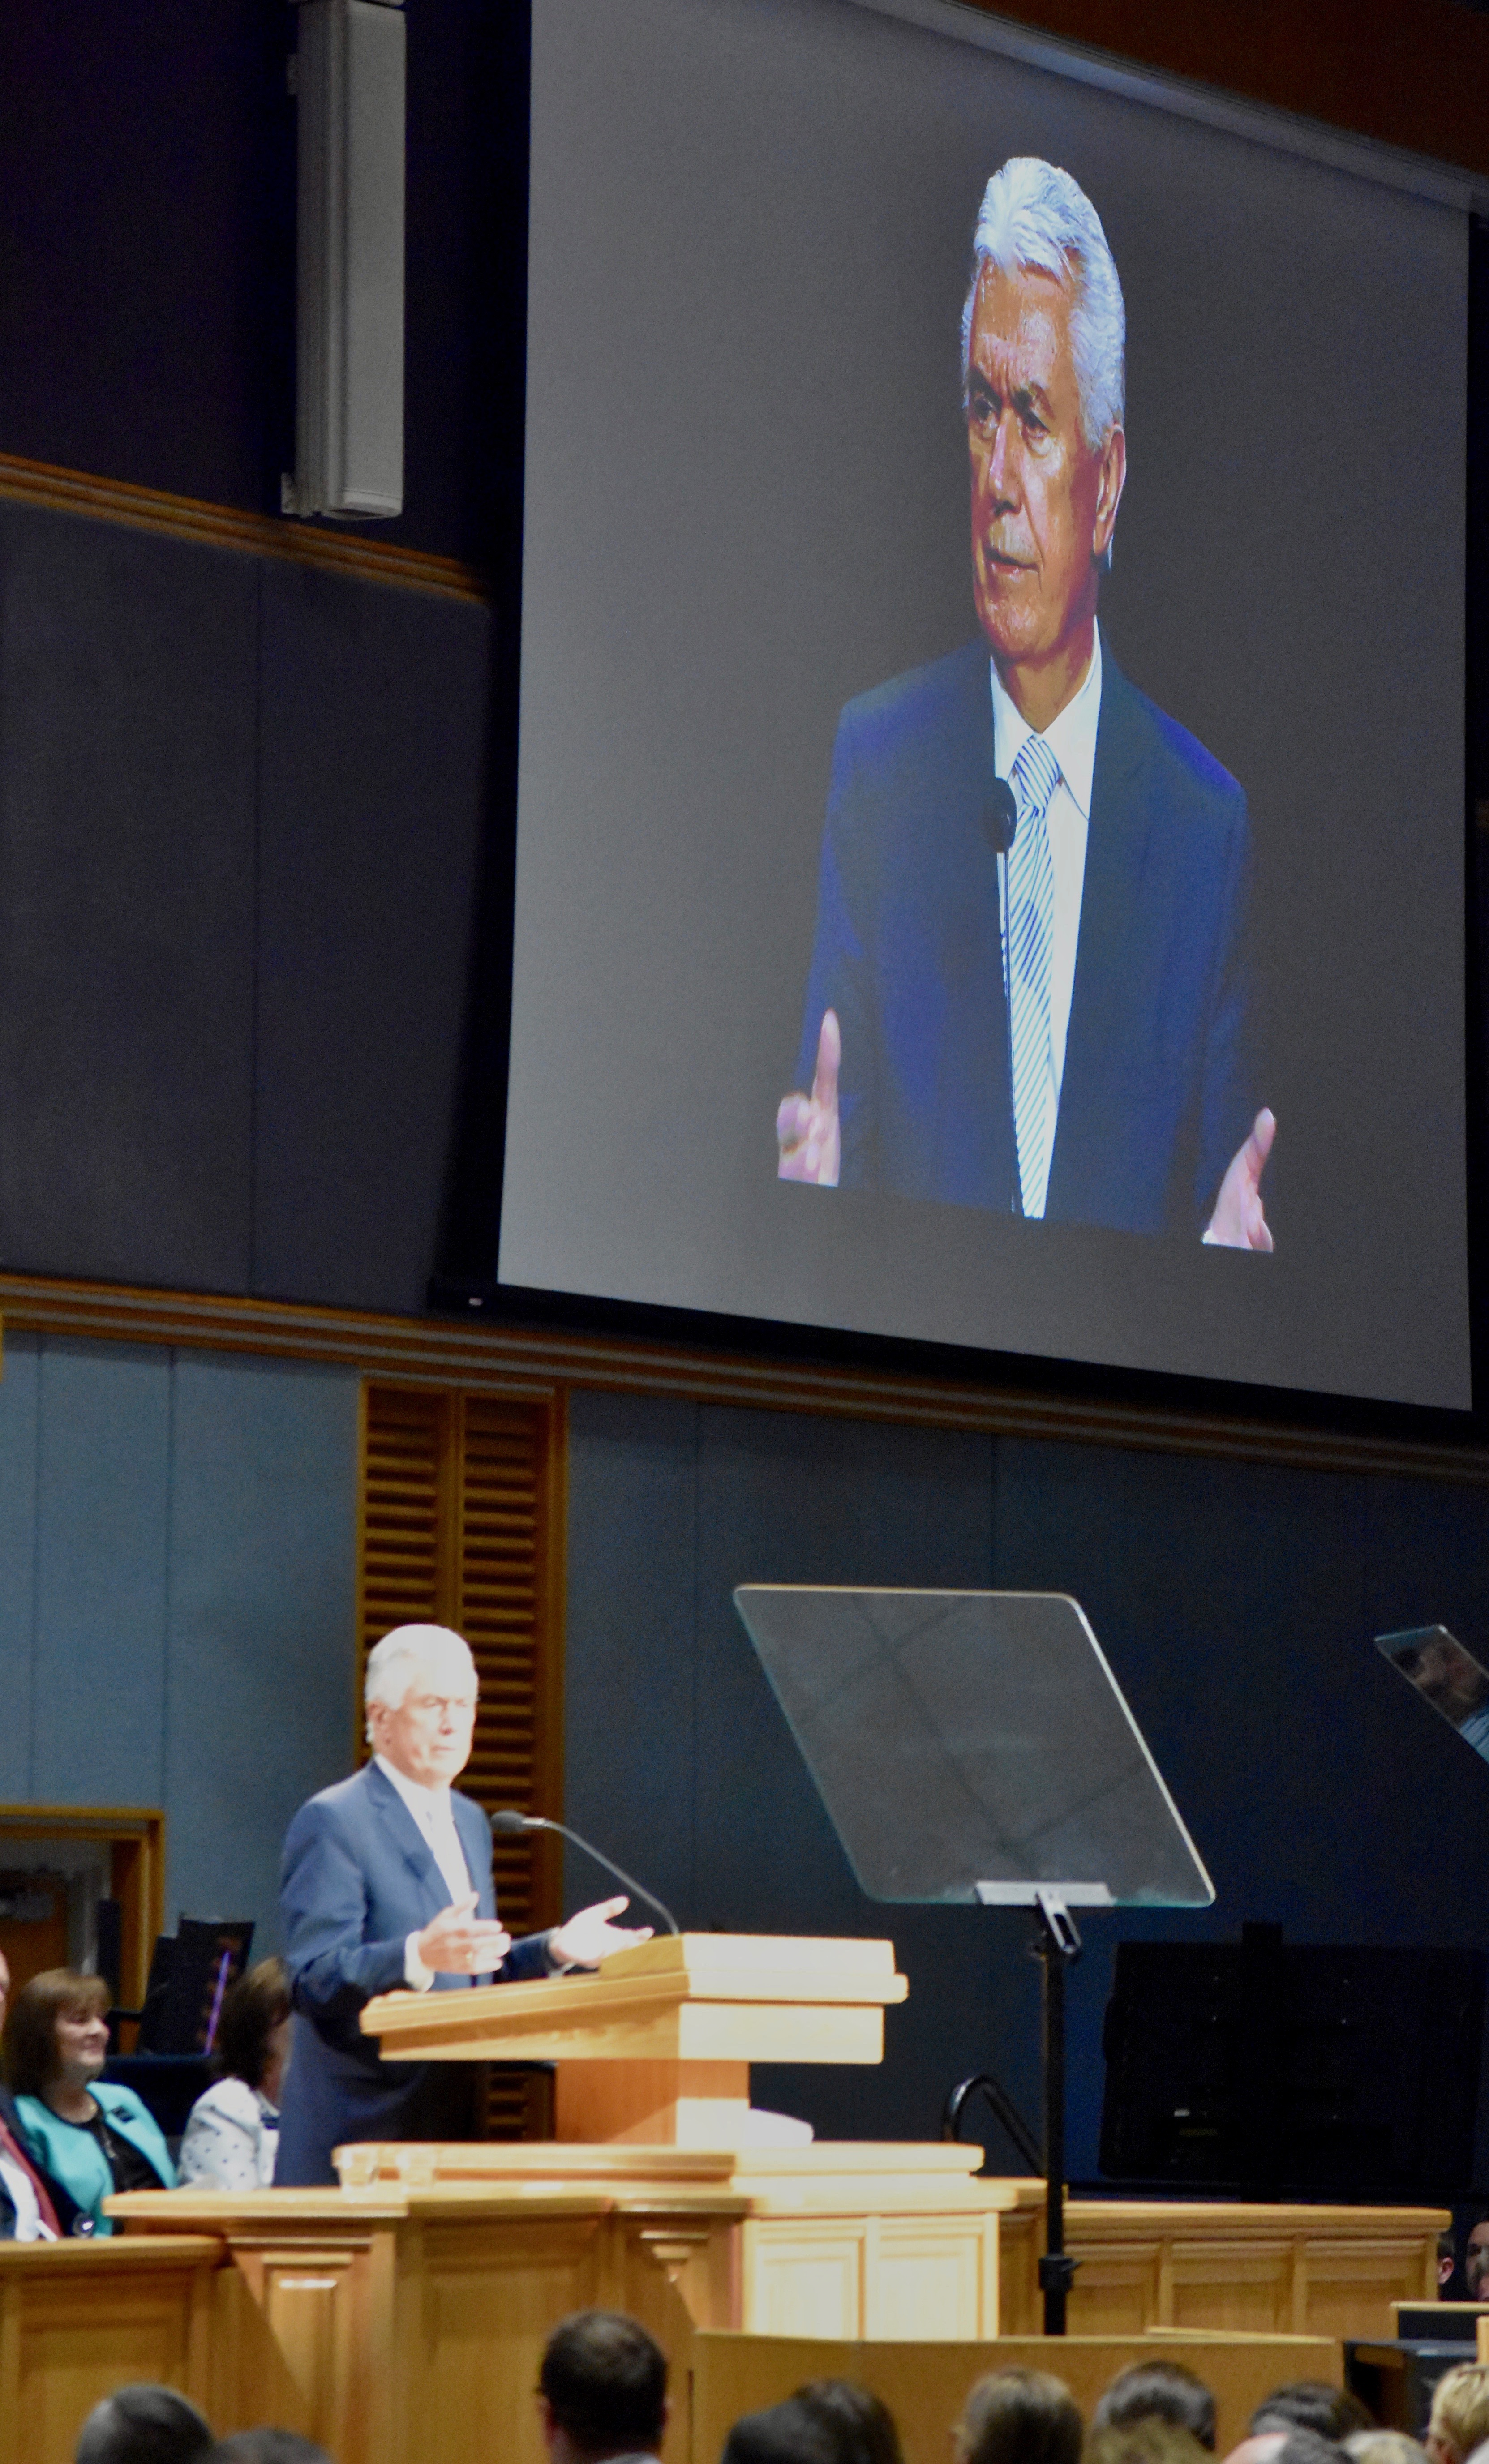 An image of Elder Dieter M. Uchtdorf is projected on the video screen as he speaks at a Provo Missionary Training Center devotional on Nov. 5, 2019.